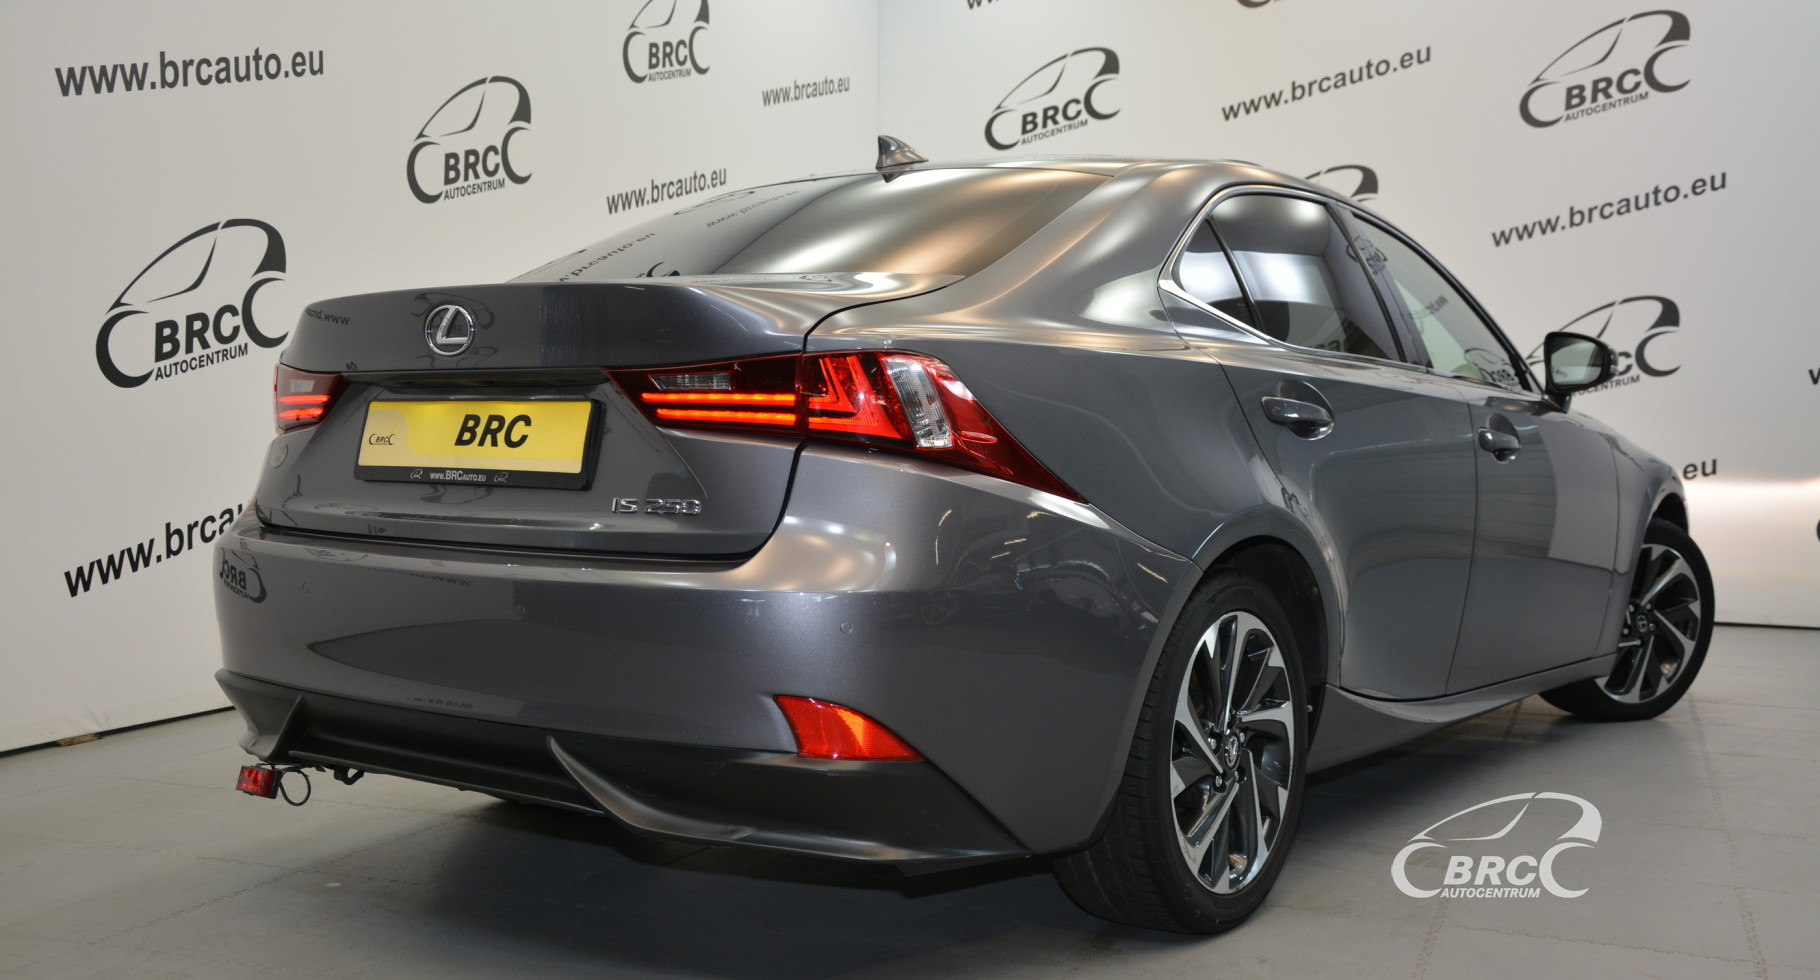 Lexus IS 250 Automatas